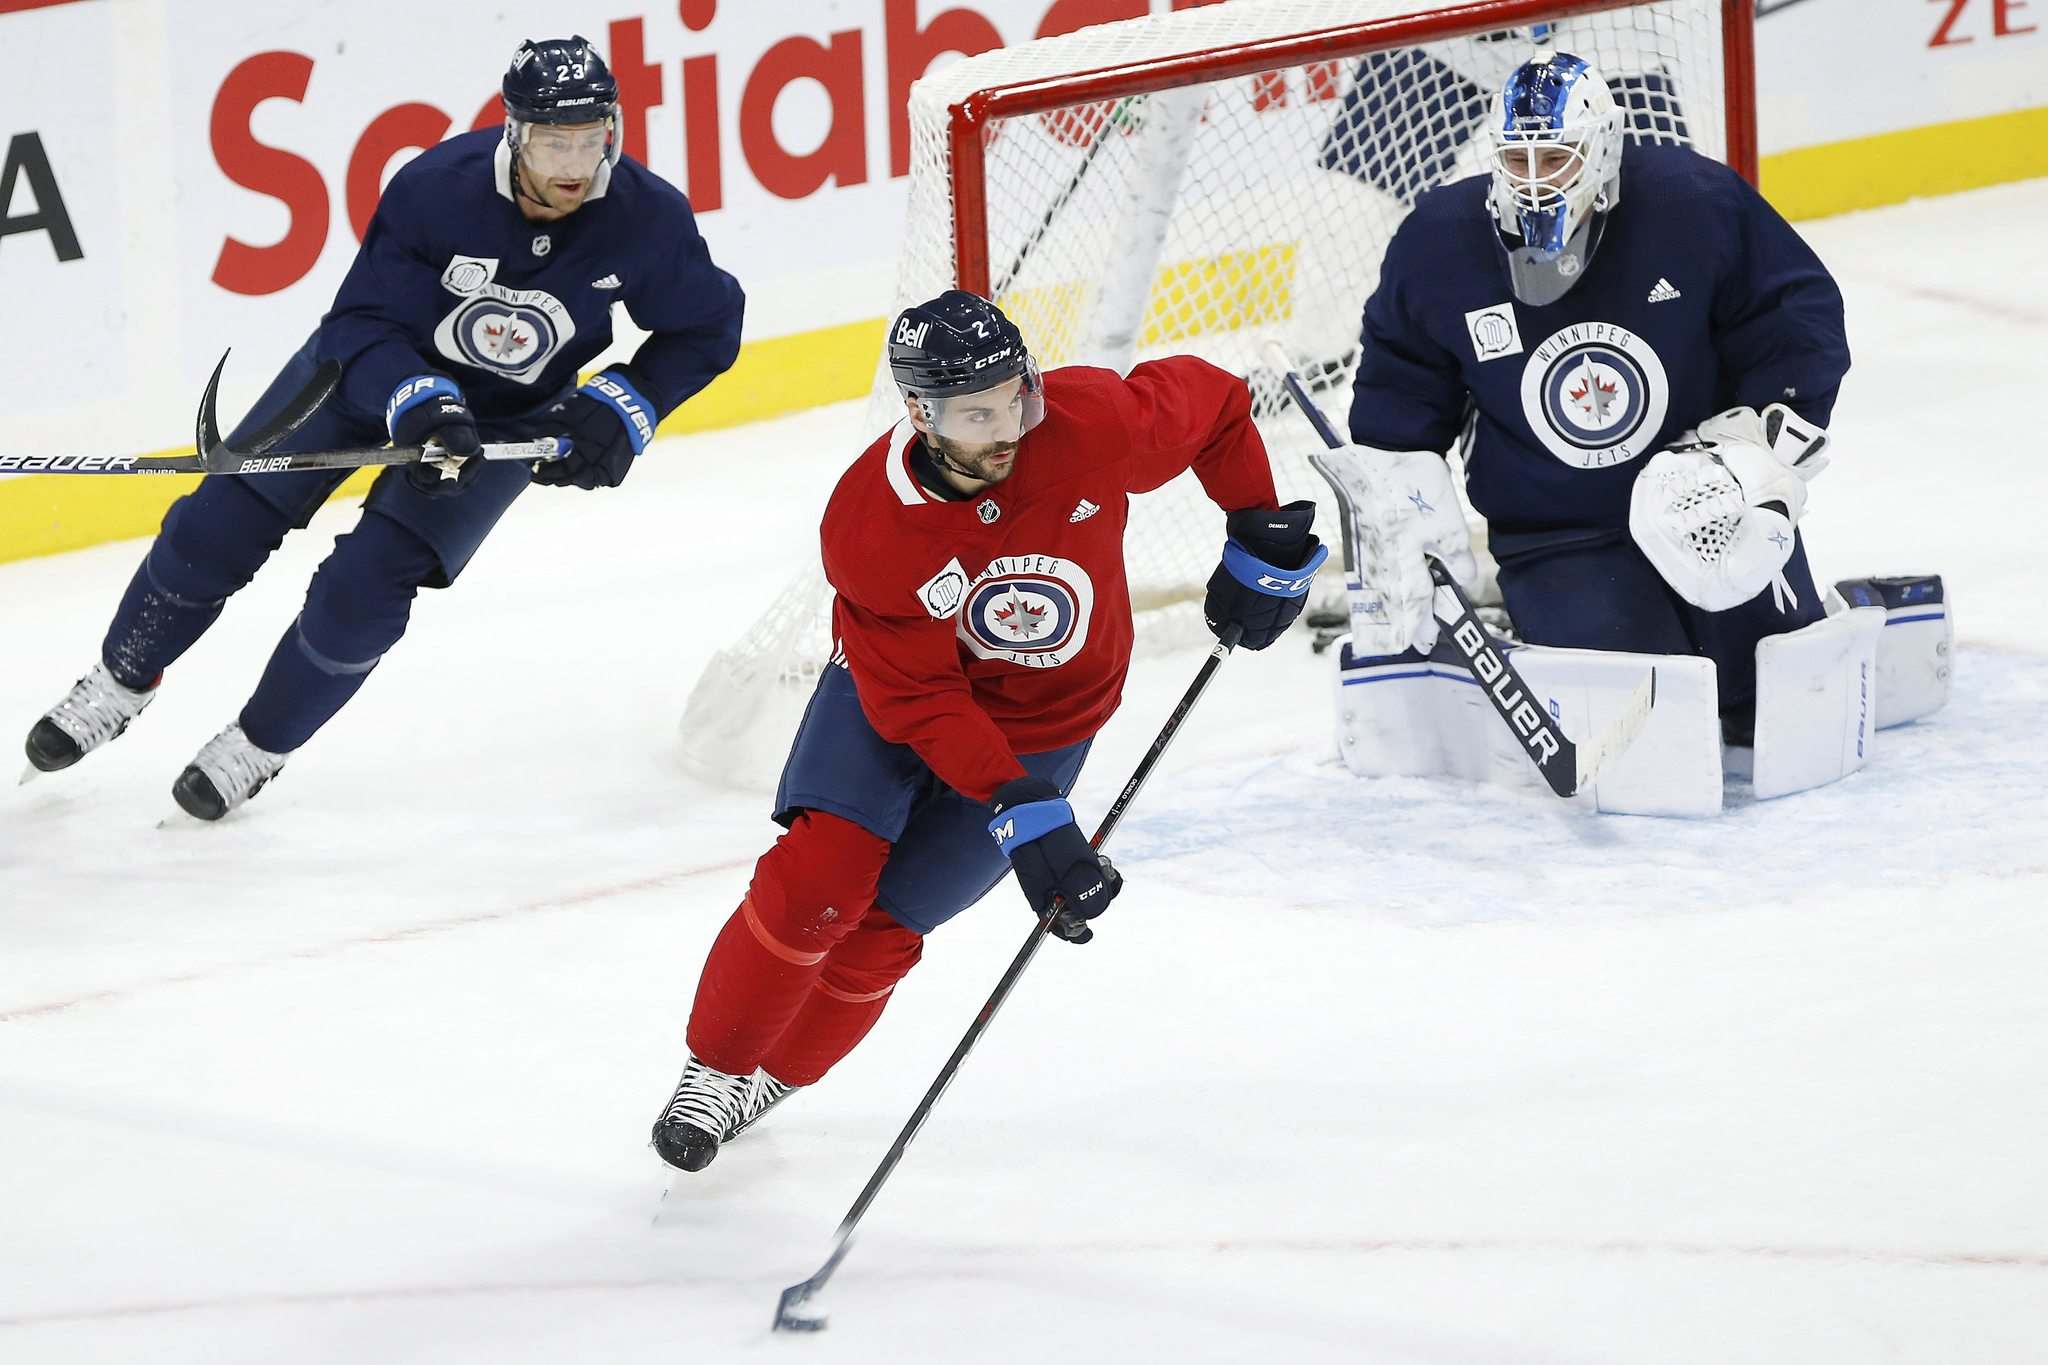 "JOHN WOODS / WINNIPEG FREE PRESS</p> <p>Winnipeg Jets' Dylan DeMelo (2) picks up a loose puck at practice Sunday. He will not make the trip, missing his second straight game to stay home and offer support for his partner as they tend to their newborn baby. </p> <p>""> </a><figcaption readability="